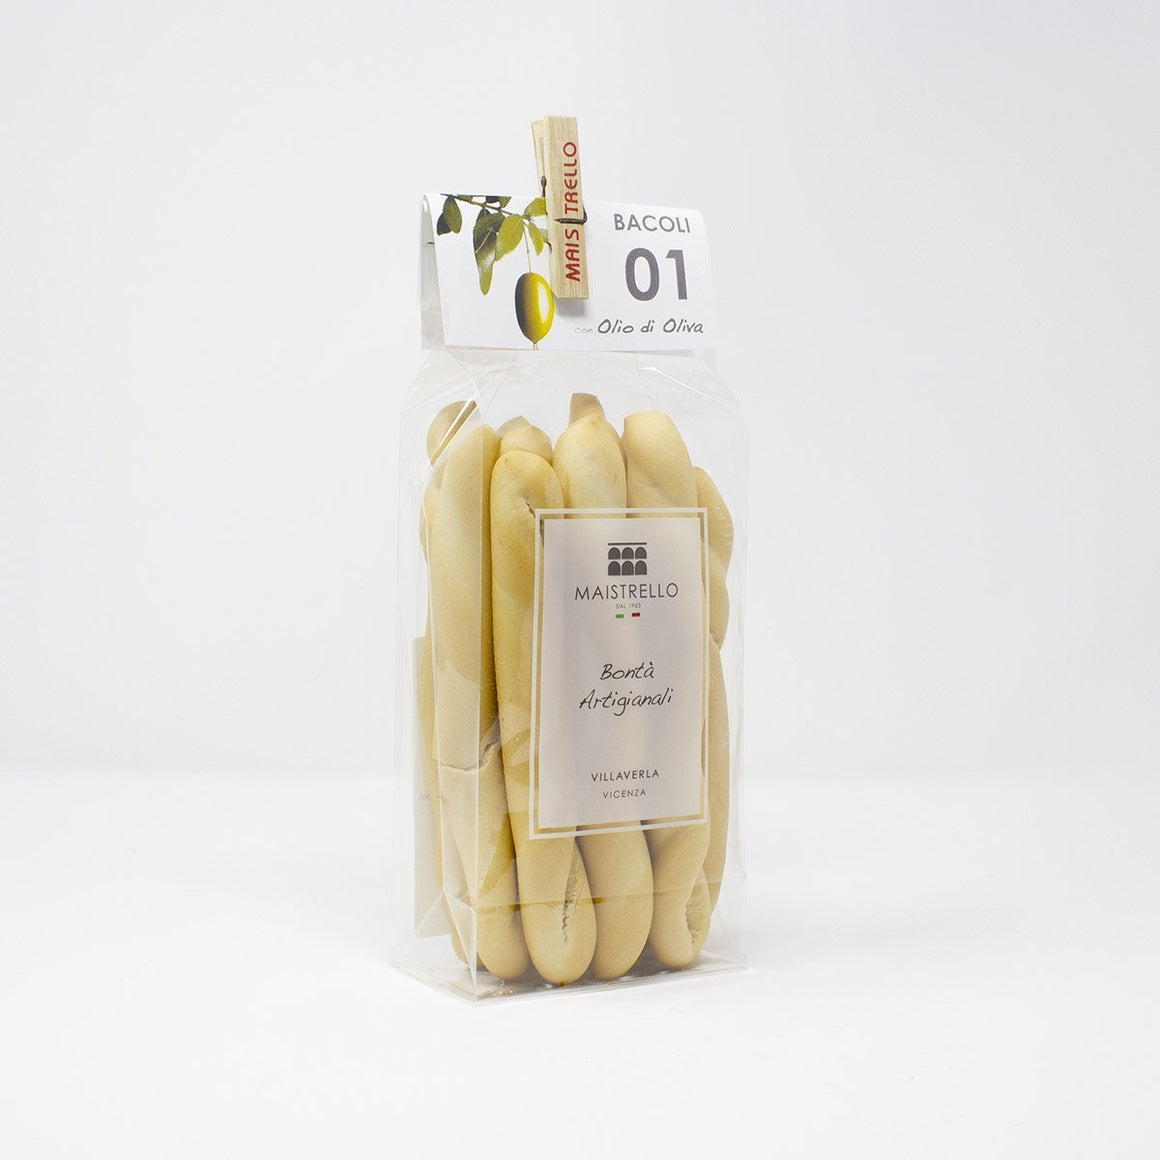 Artisan breadsticks with Extra Virgin Olive Oil - Bacoli 01 - PepeGusto